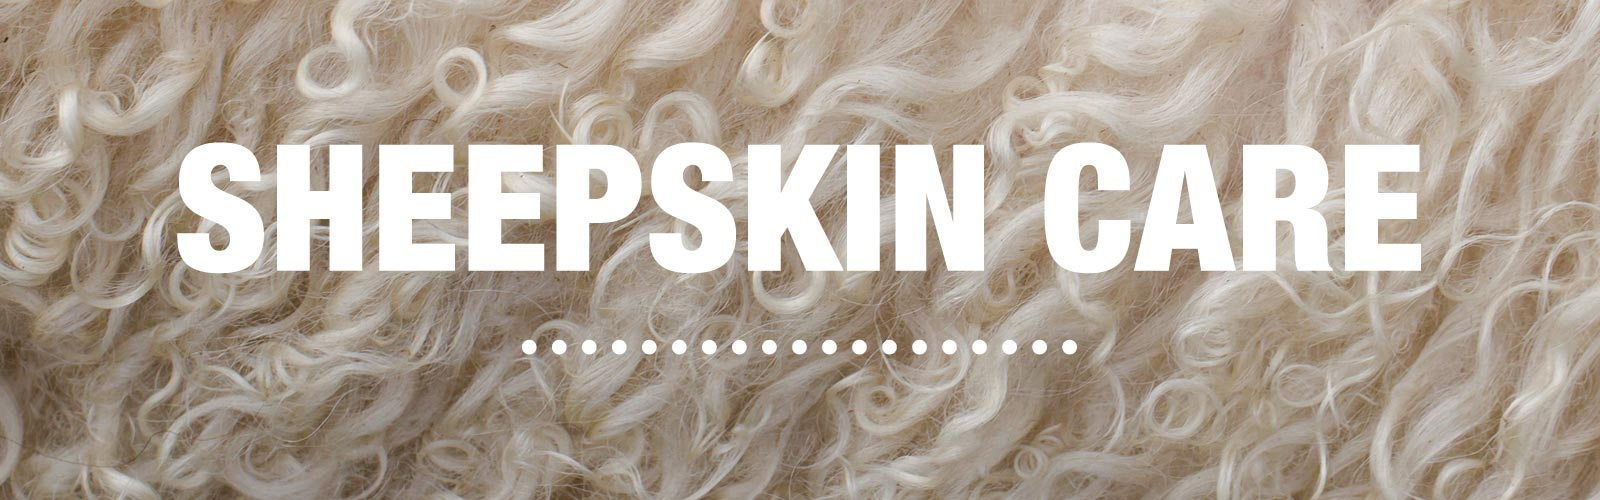 Sheepskin Care Guide